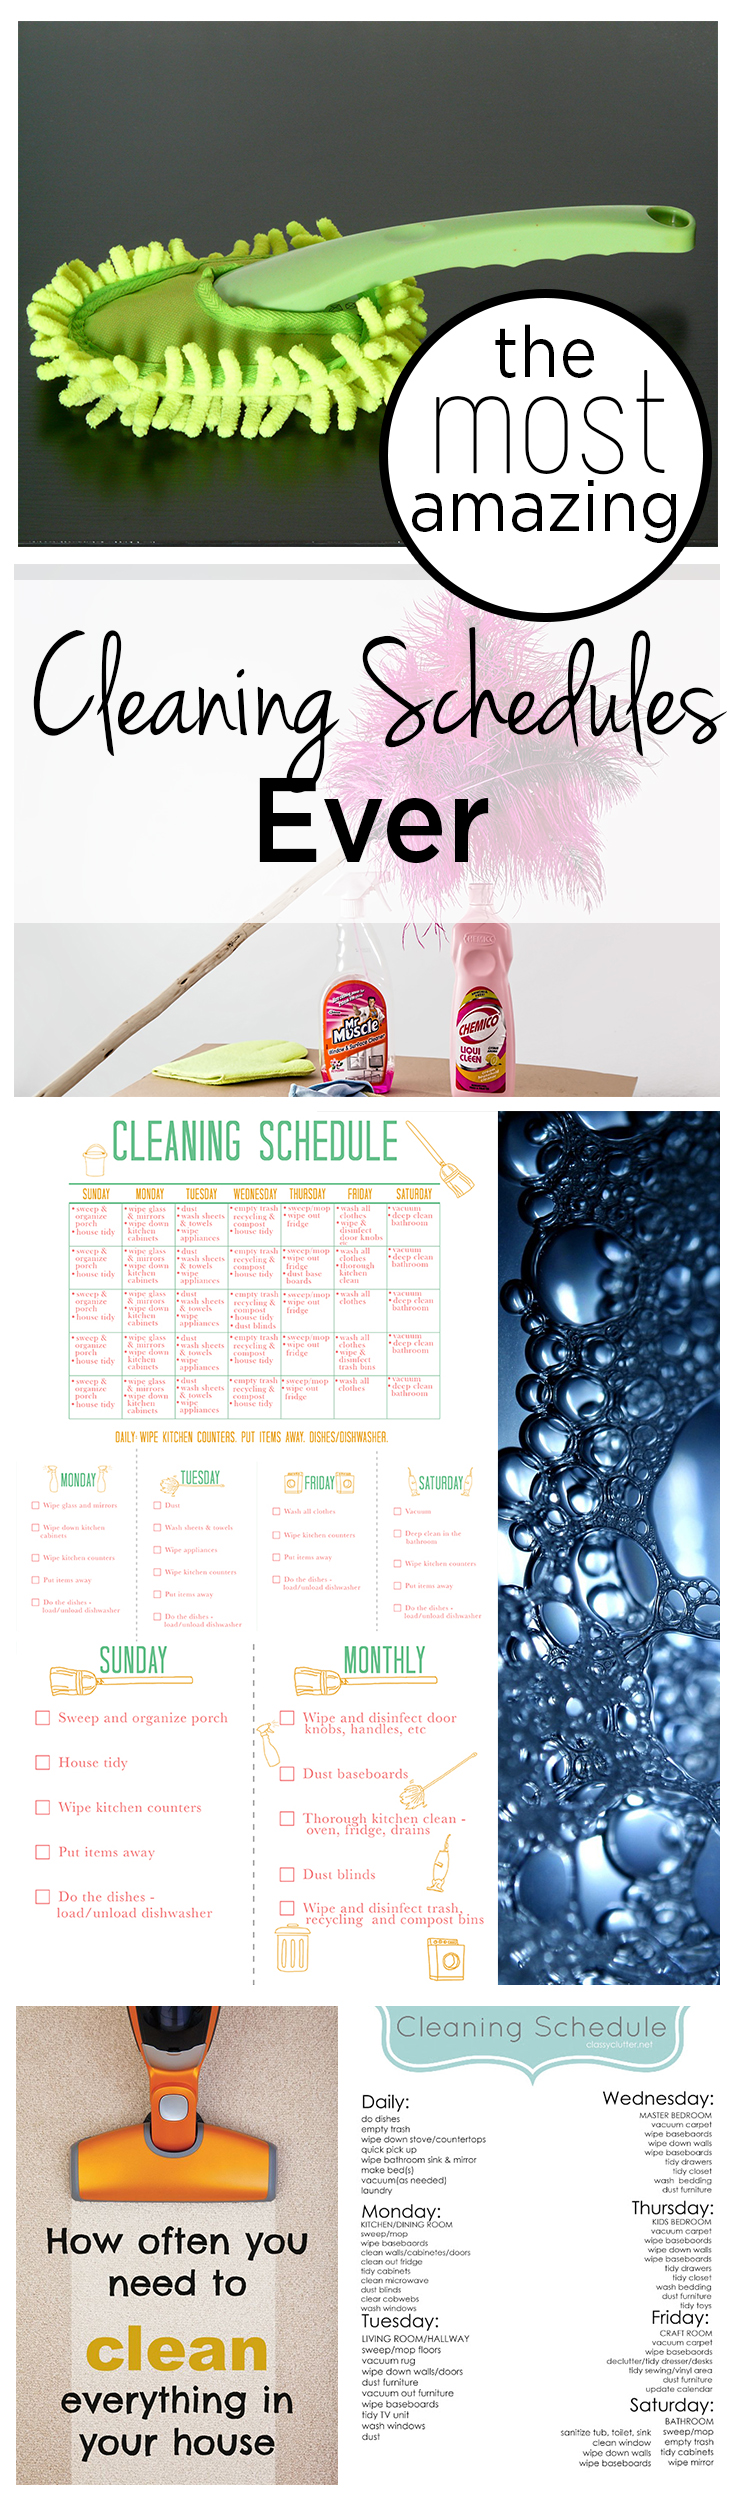 Cleaning, cleaning schedules, cleaning tips, popular pin, easy ways to clean, cleaning hacks, cleaning home, DIY cleaning, clean home.